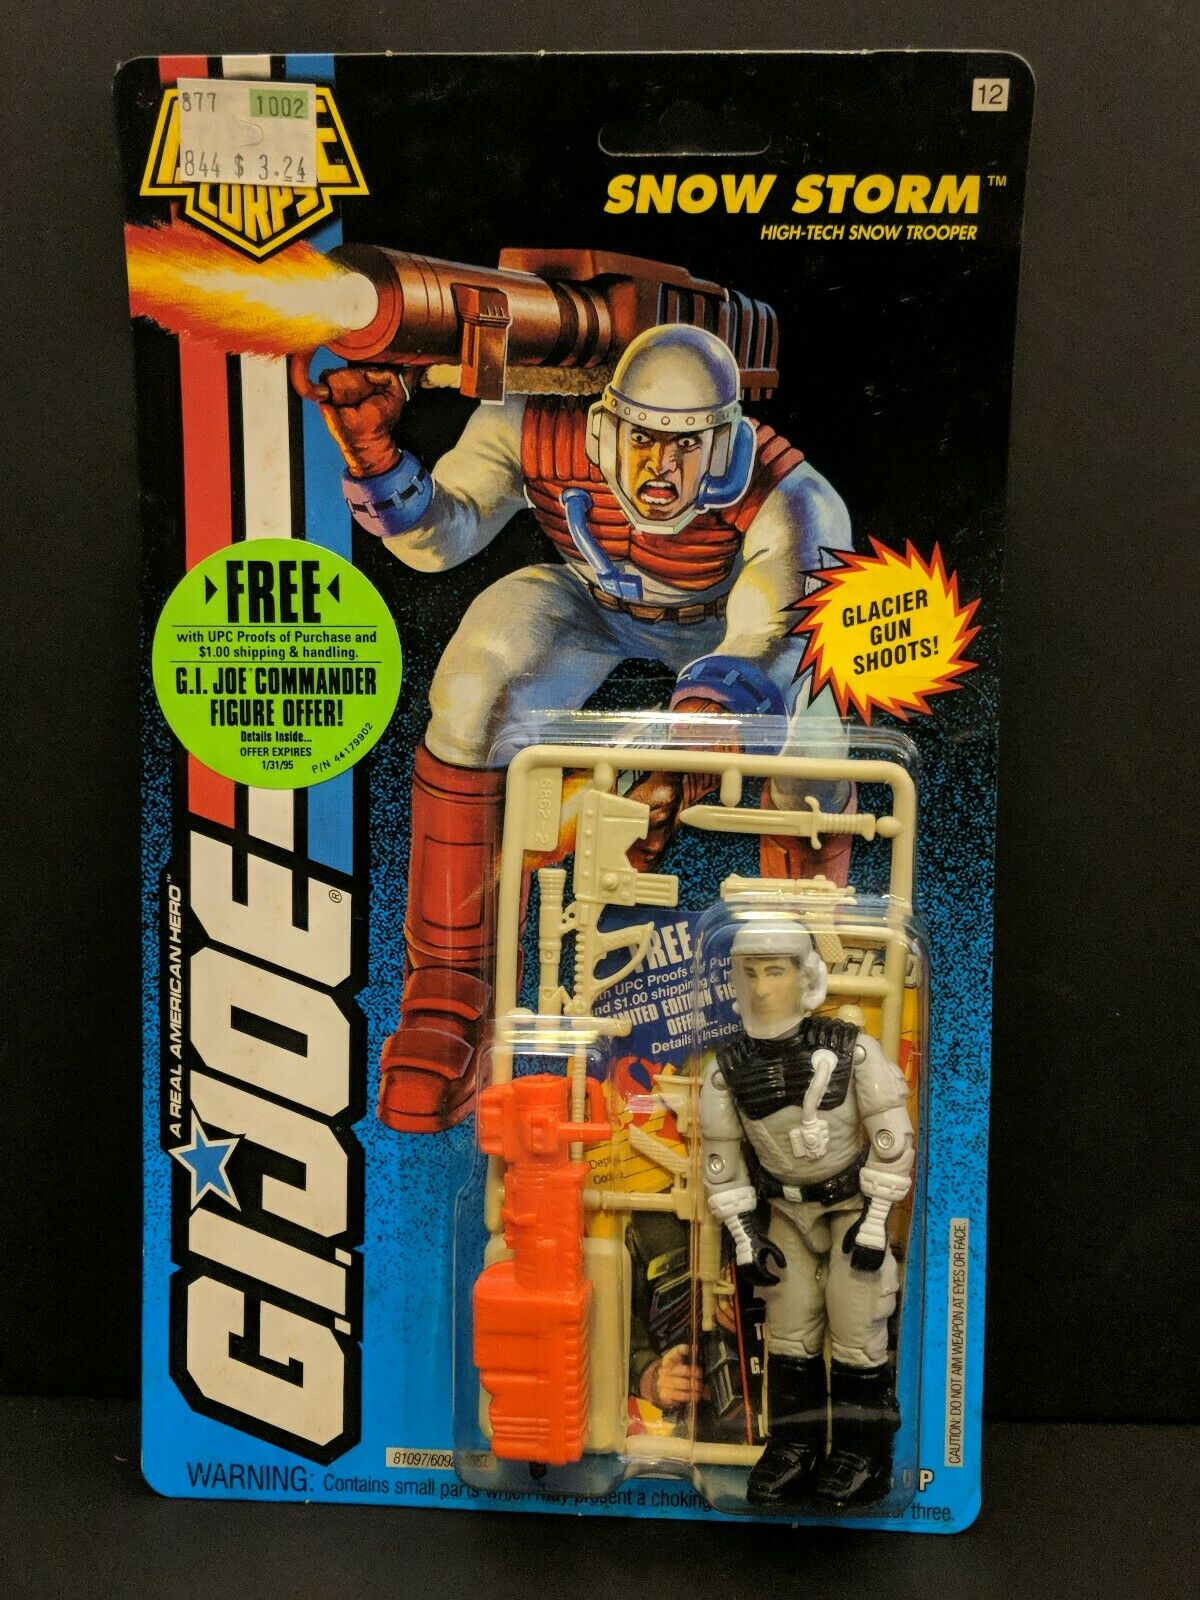 Vintage 1994 Hasbro GI Joe battle Corps SNOW STORM Action Figure MOC toy SEALED